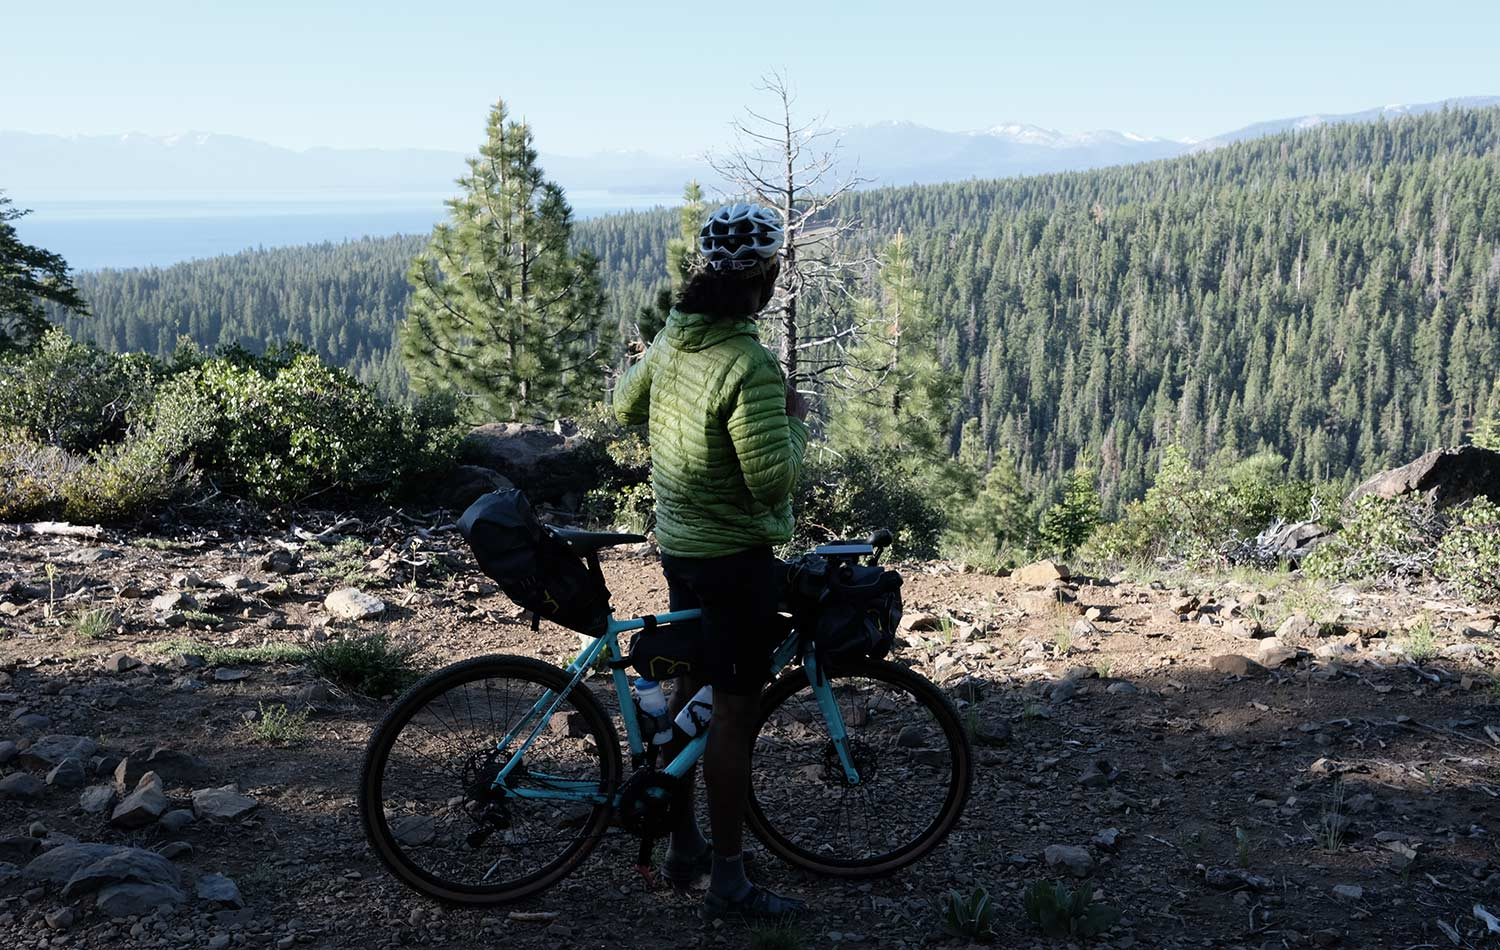 Naresh Kumar exploring local trails around Lake Tahoe, California. Bikepacking Adventures | Apidura